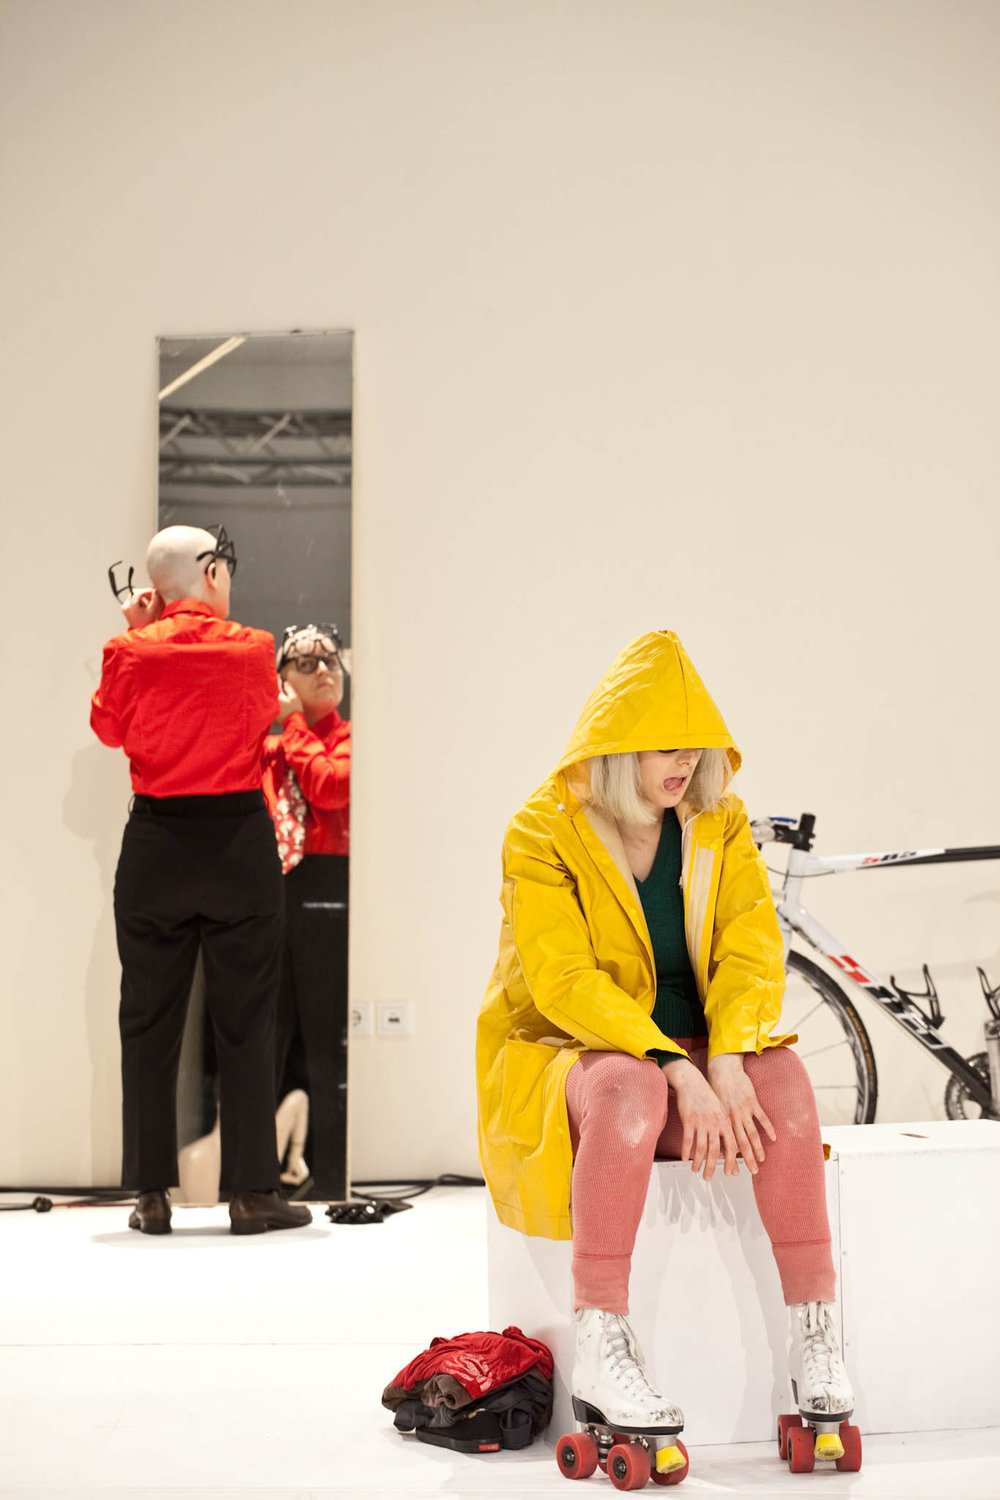 Scaroni, in wig, slicker, and skates, sits slumped, mouth agape. In background, Markland adjusts glasses in mirror. (photo: Sven Hagolani)